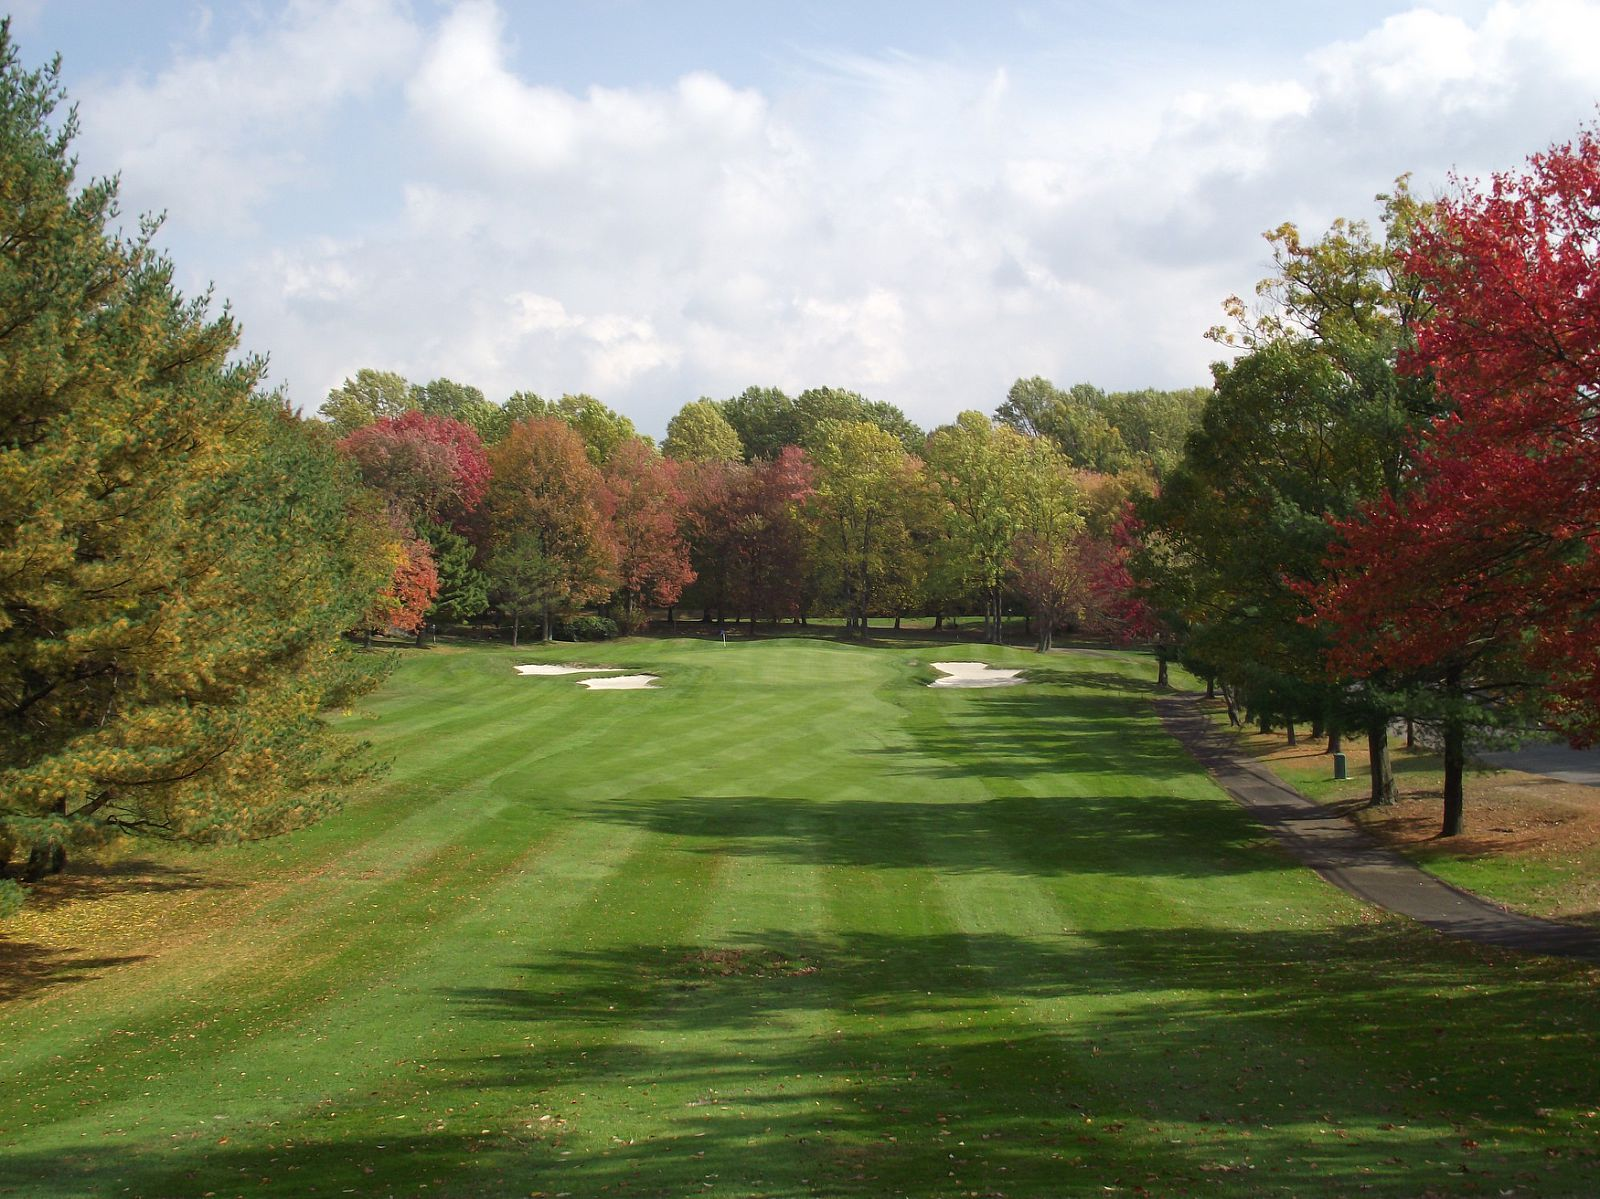 Overview of golf course named Oronoque Village Country Club